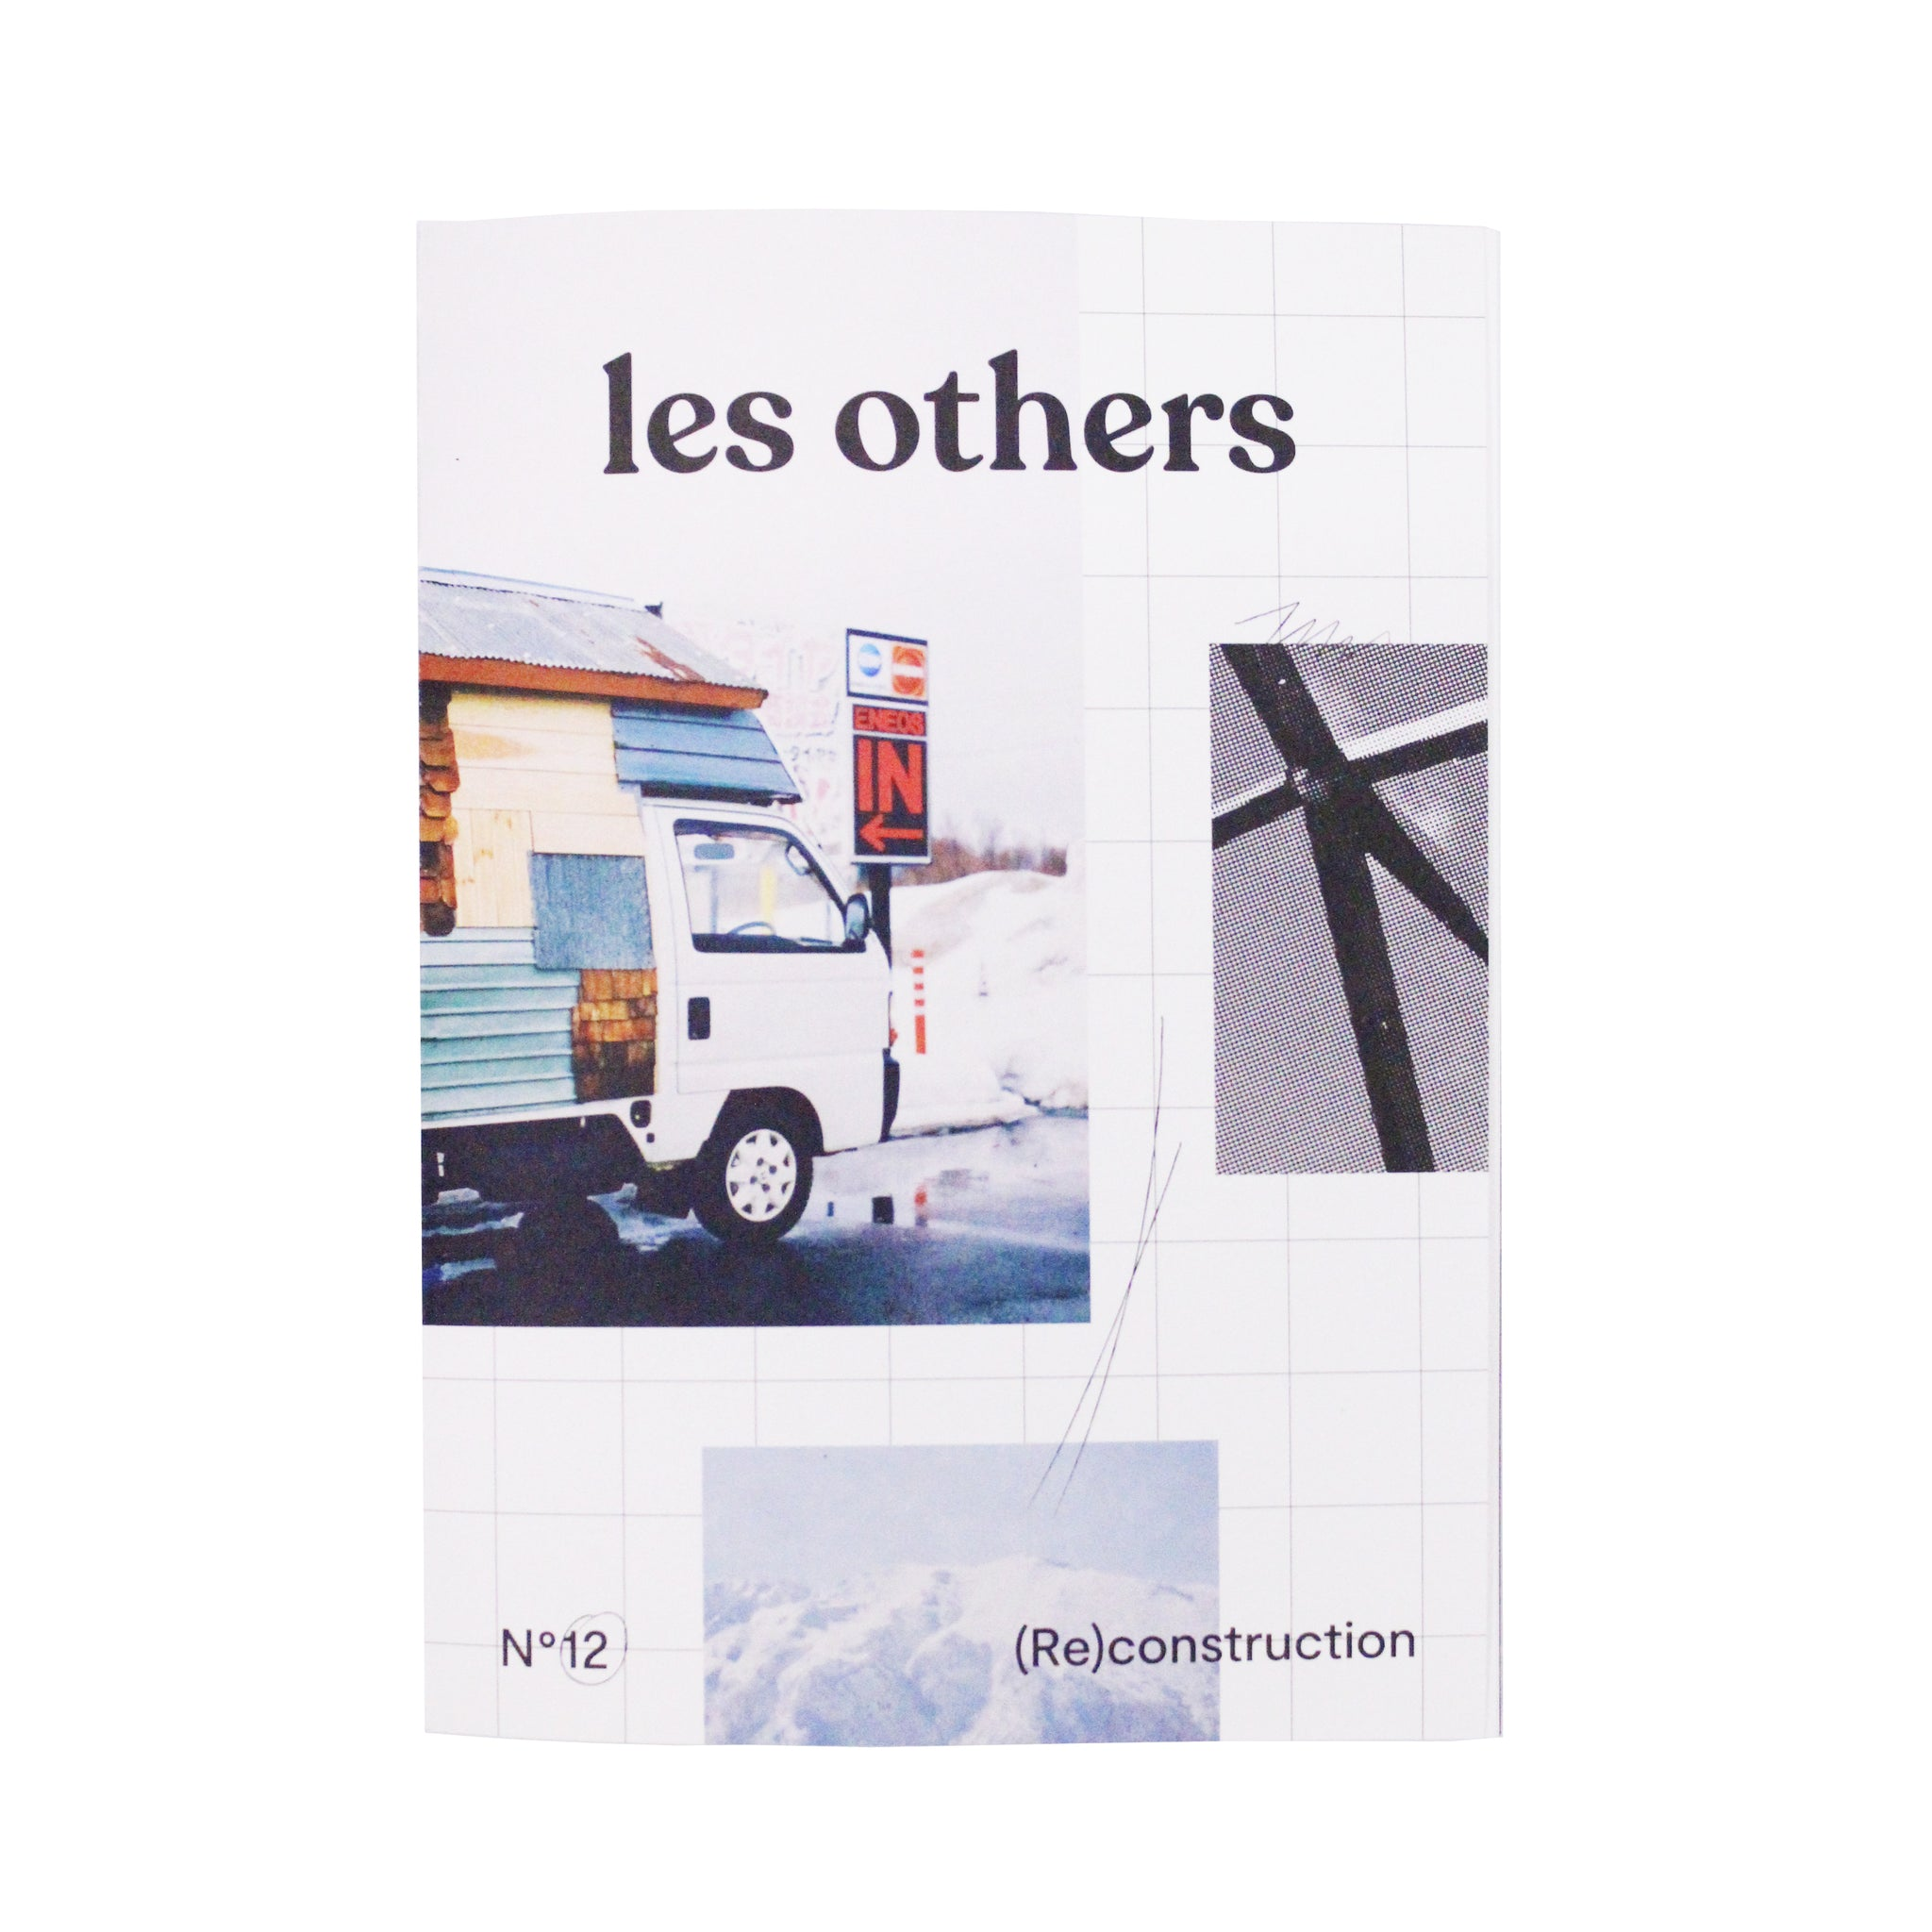 Les Others n°12 - (Re)construction